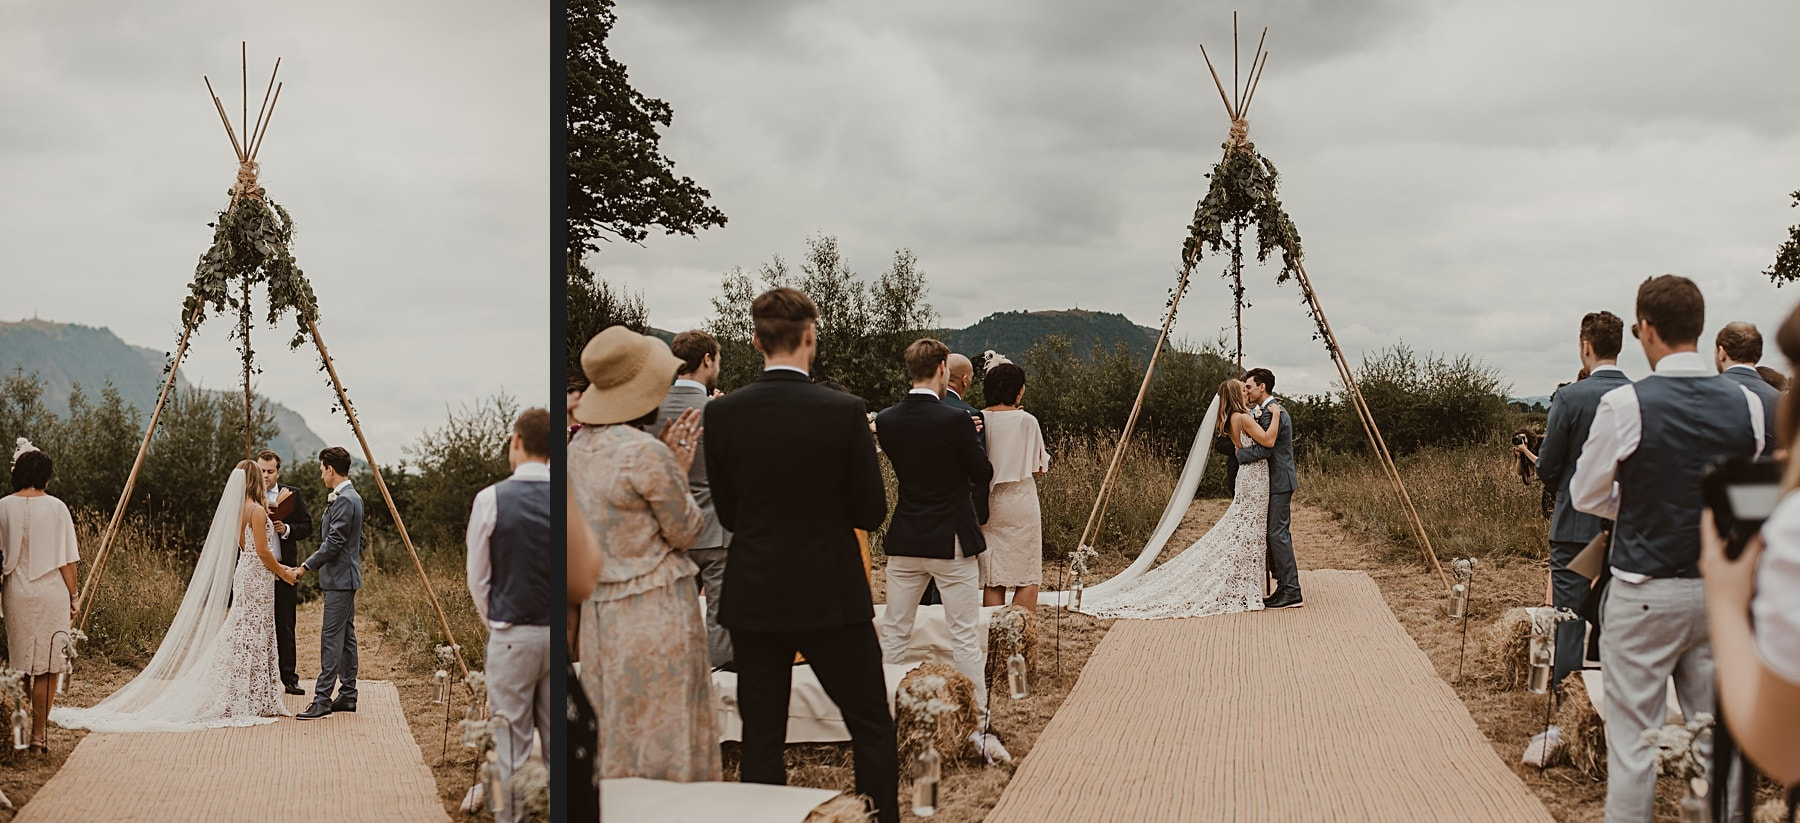 Humanist wedding in front of naked tipi